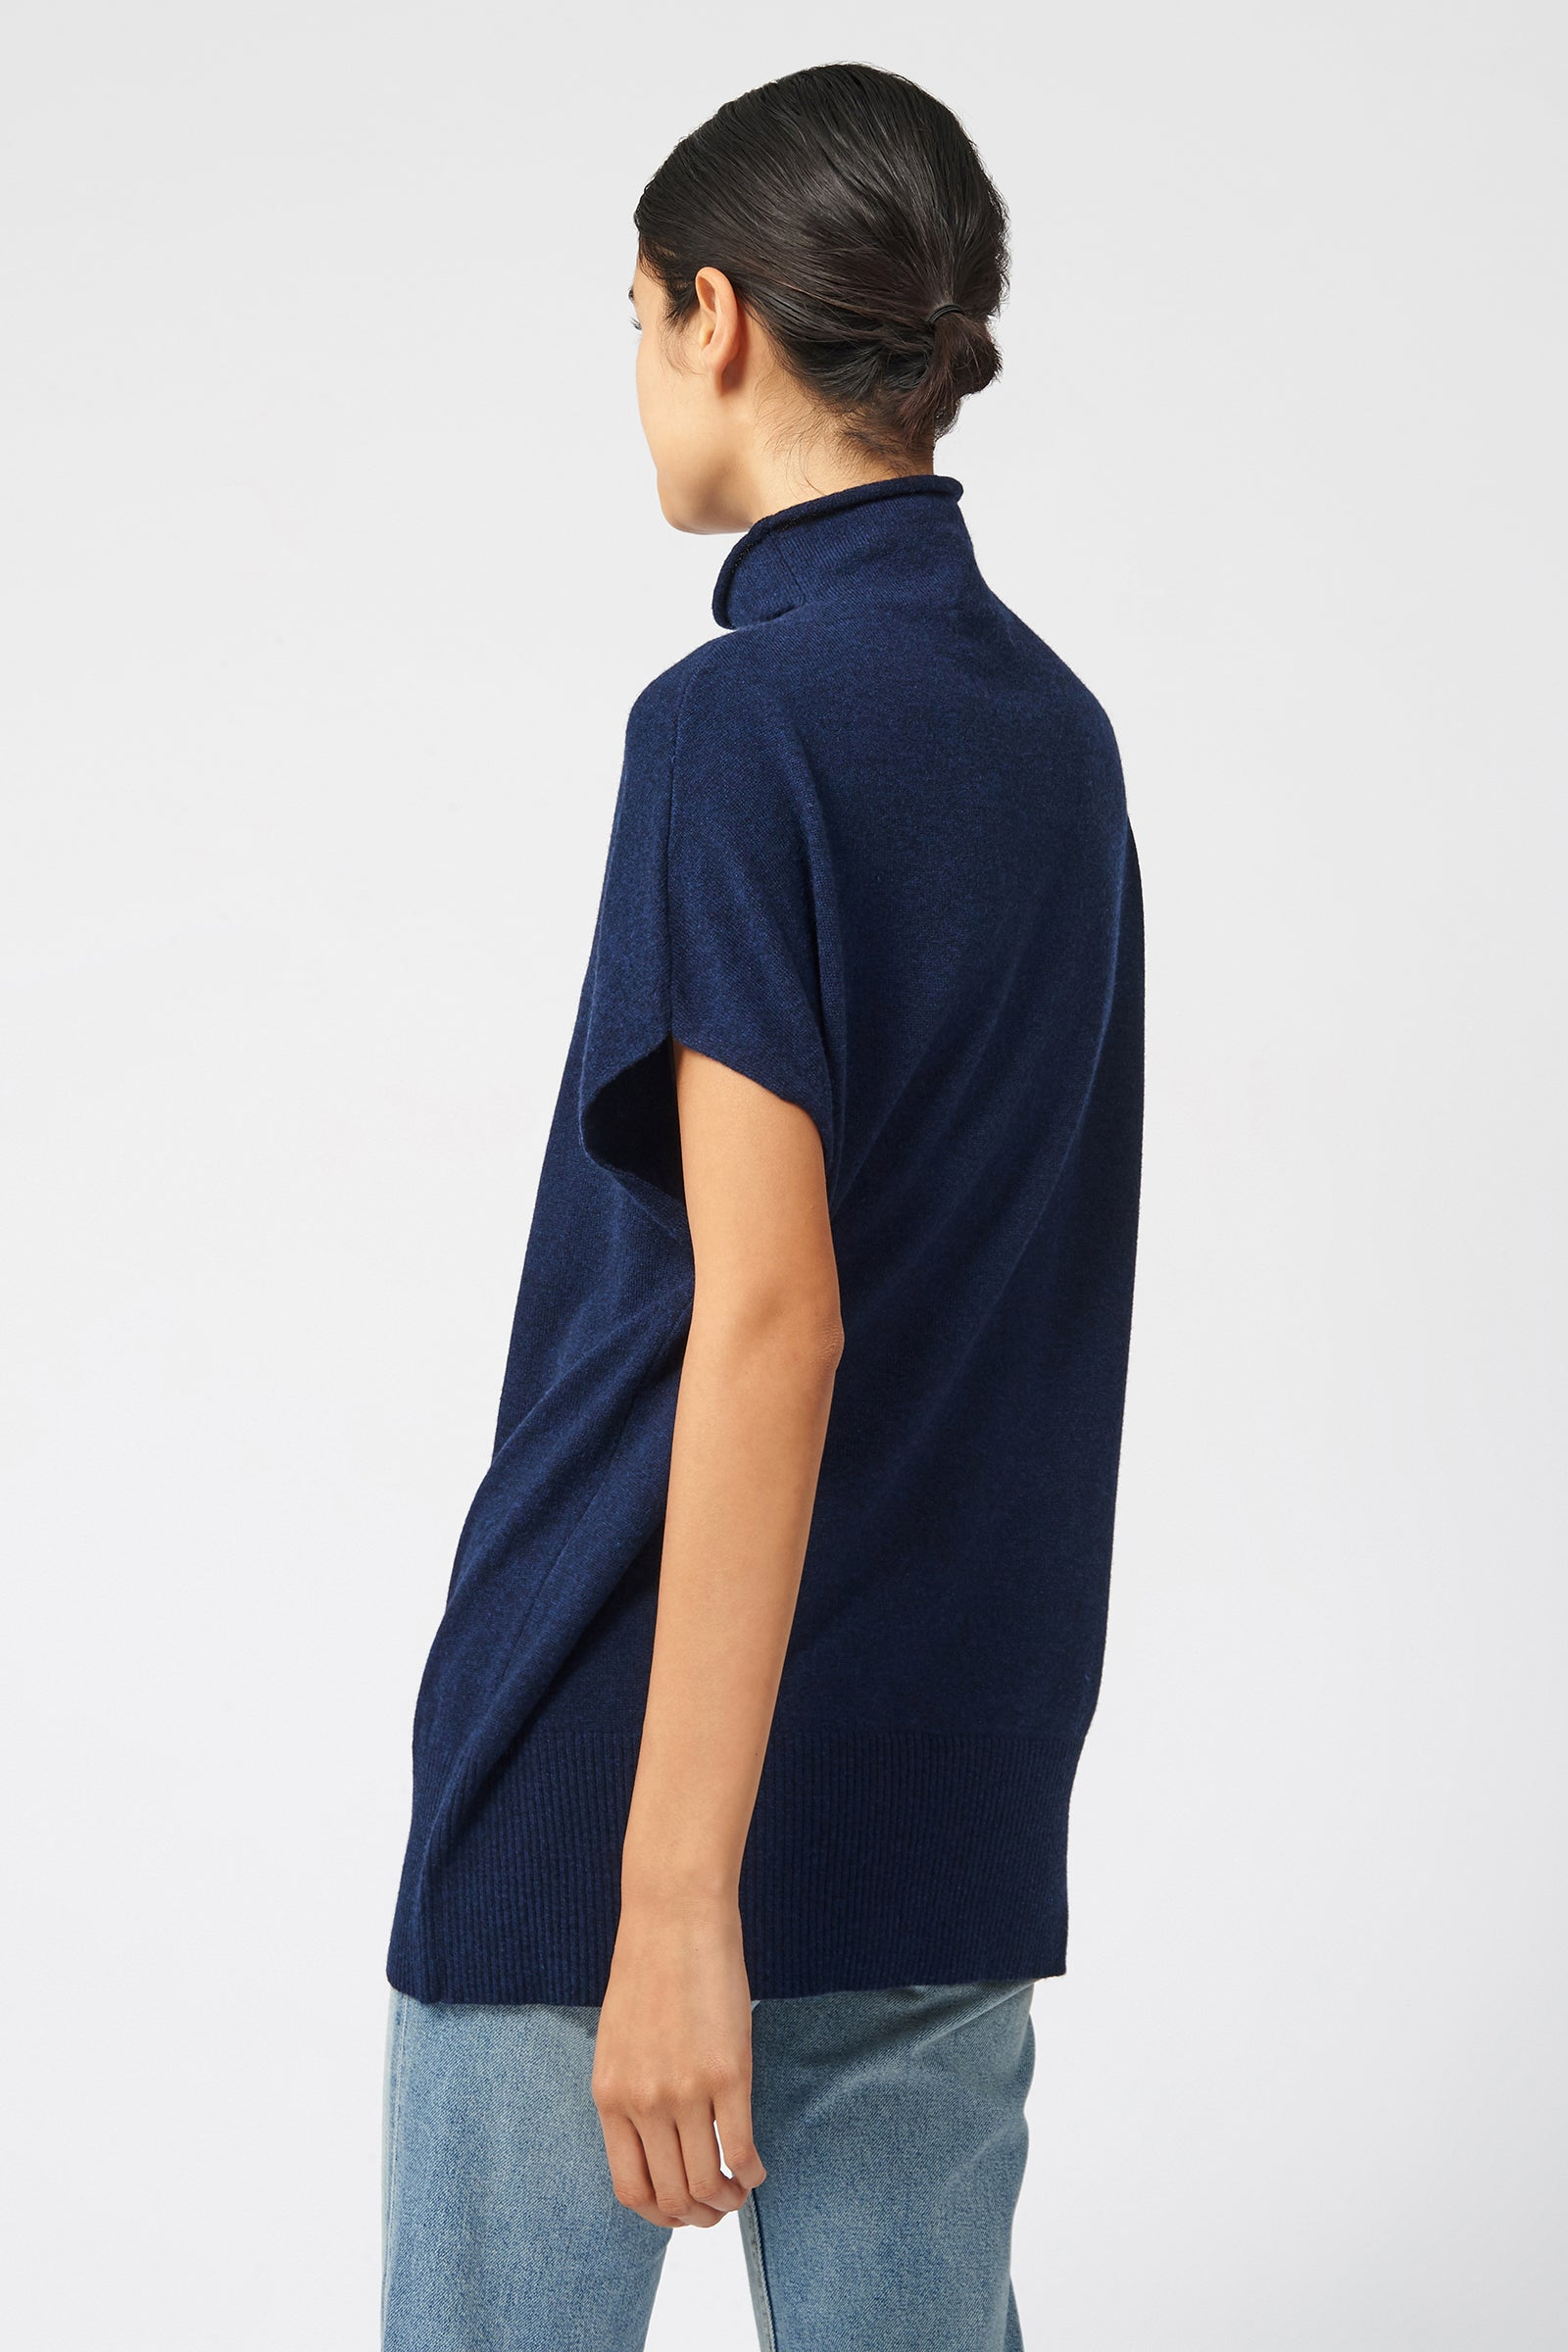 Kal Rieman Cashmere Funnelneck in Navy on Model Front View